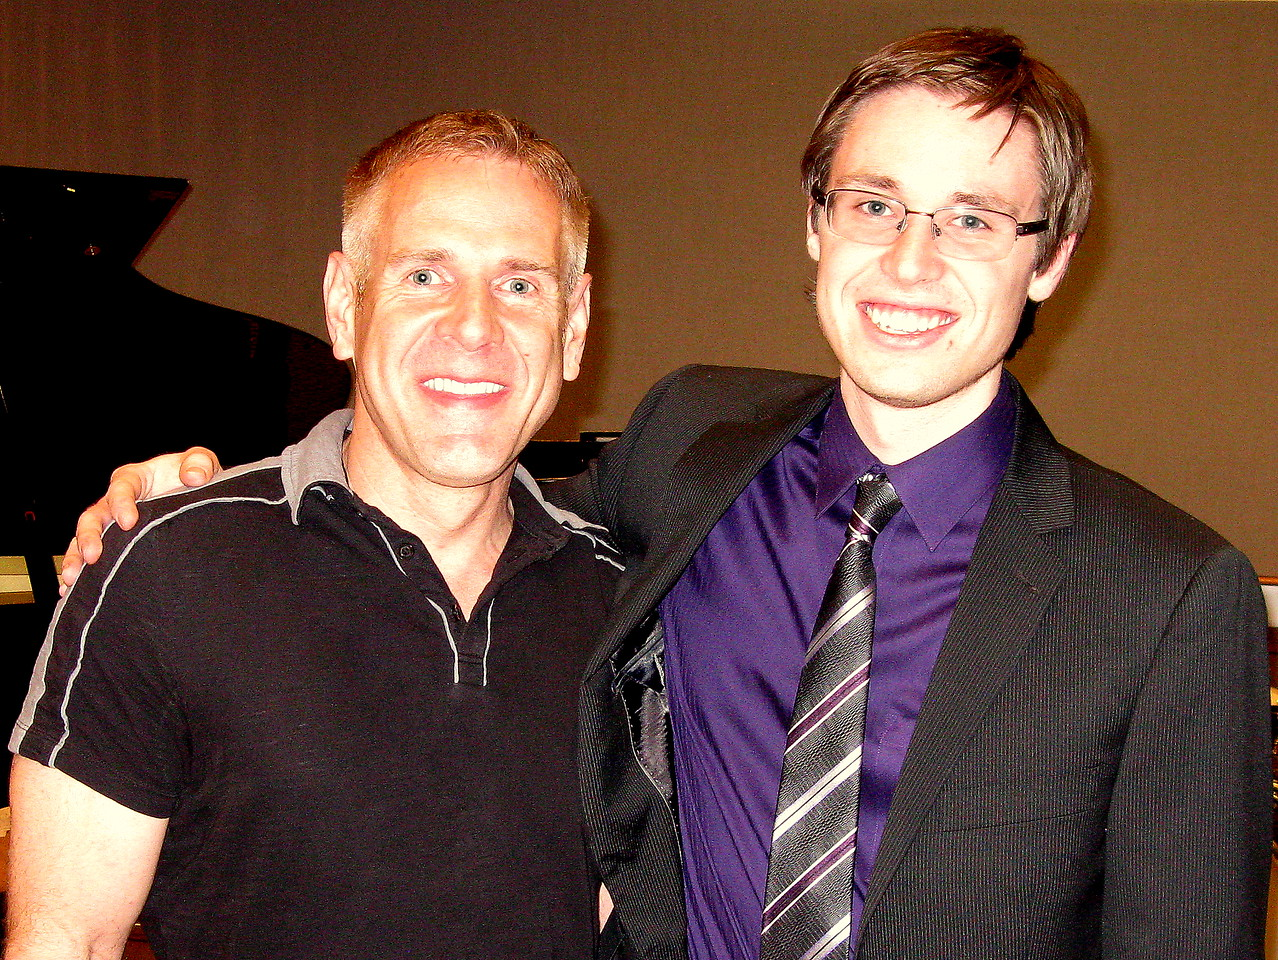 Dana Landry, an Emmy-nominated jazz pianist who is Kevin's piano teacher at the University of Northern Colorado, and Kevin.